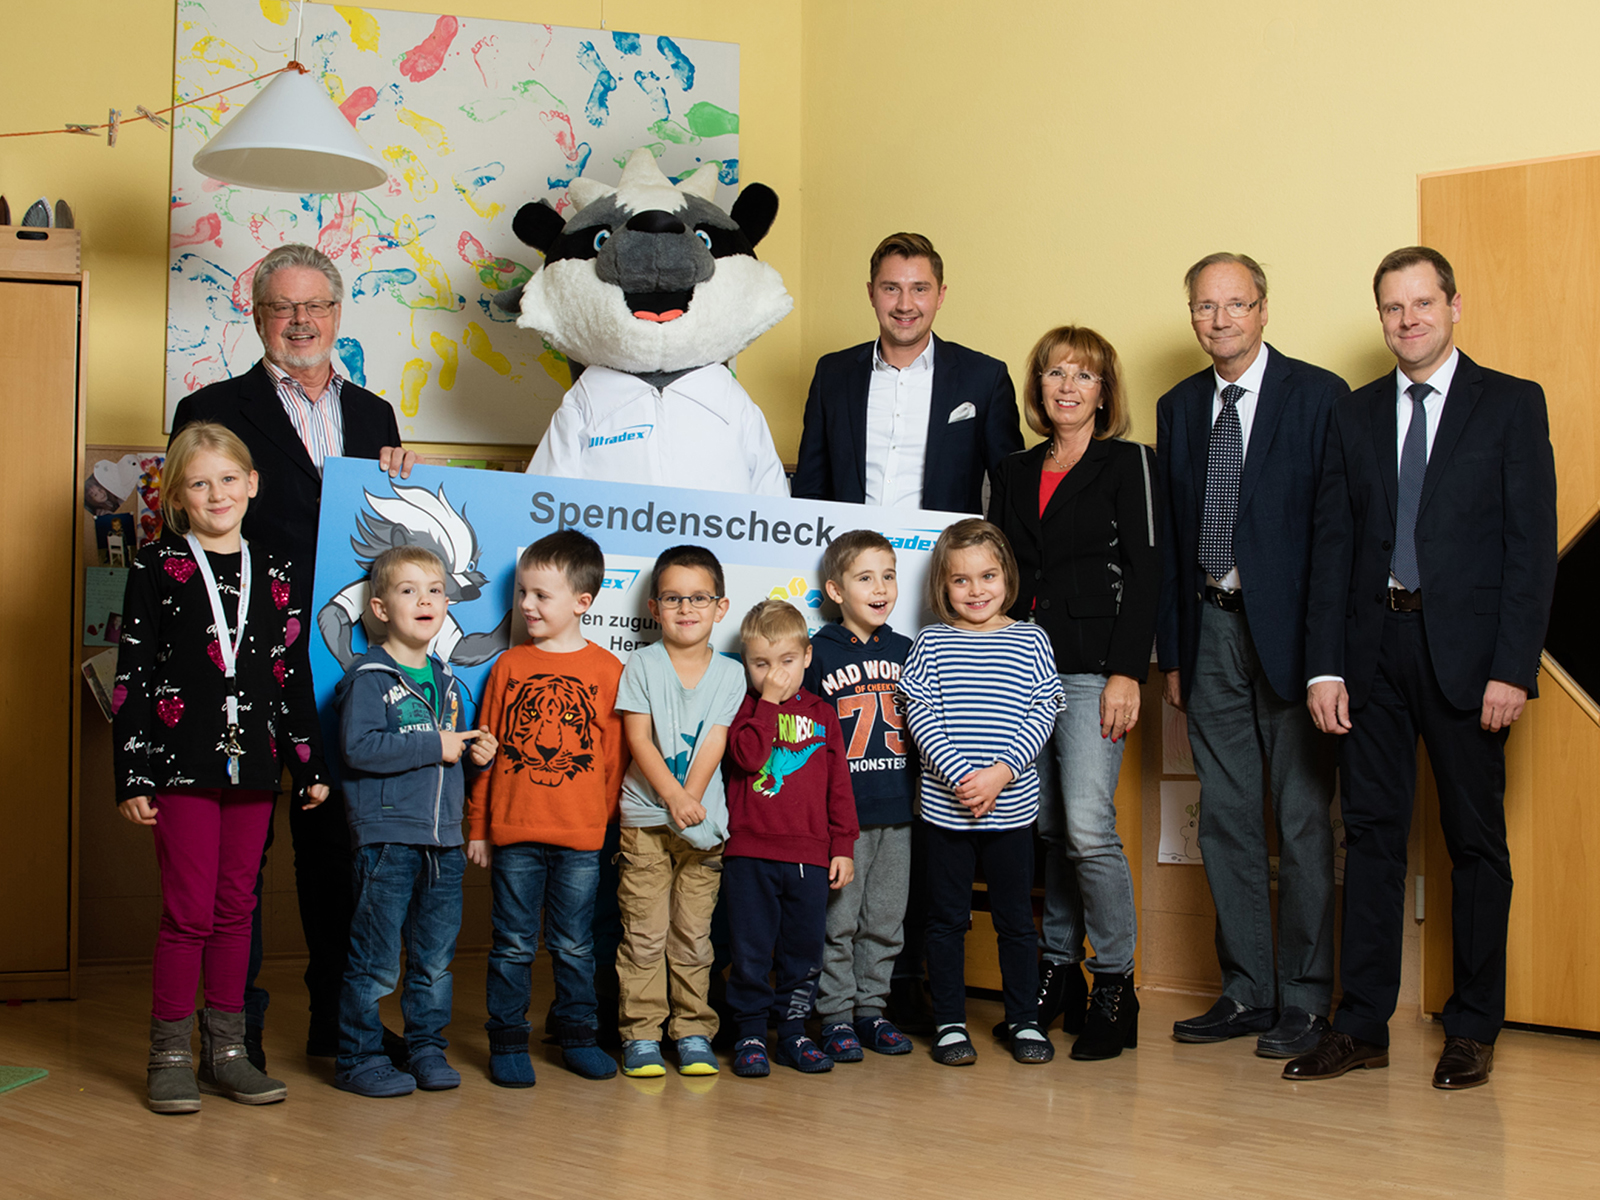 Ultradex im Rehabilitationszentrum für Kinder in Tannheim